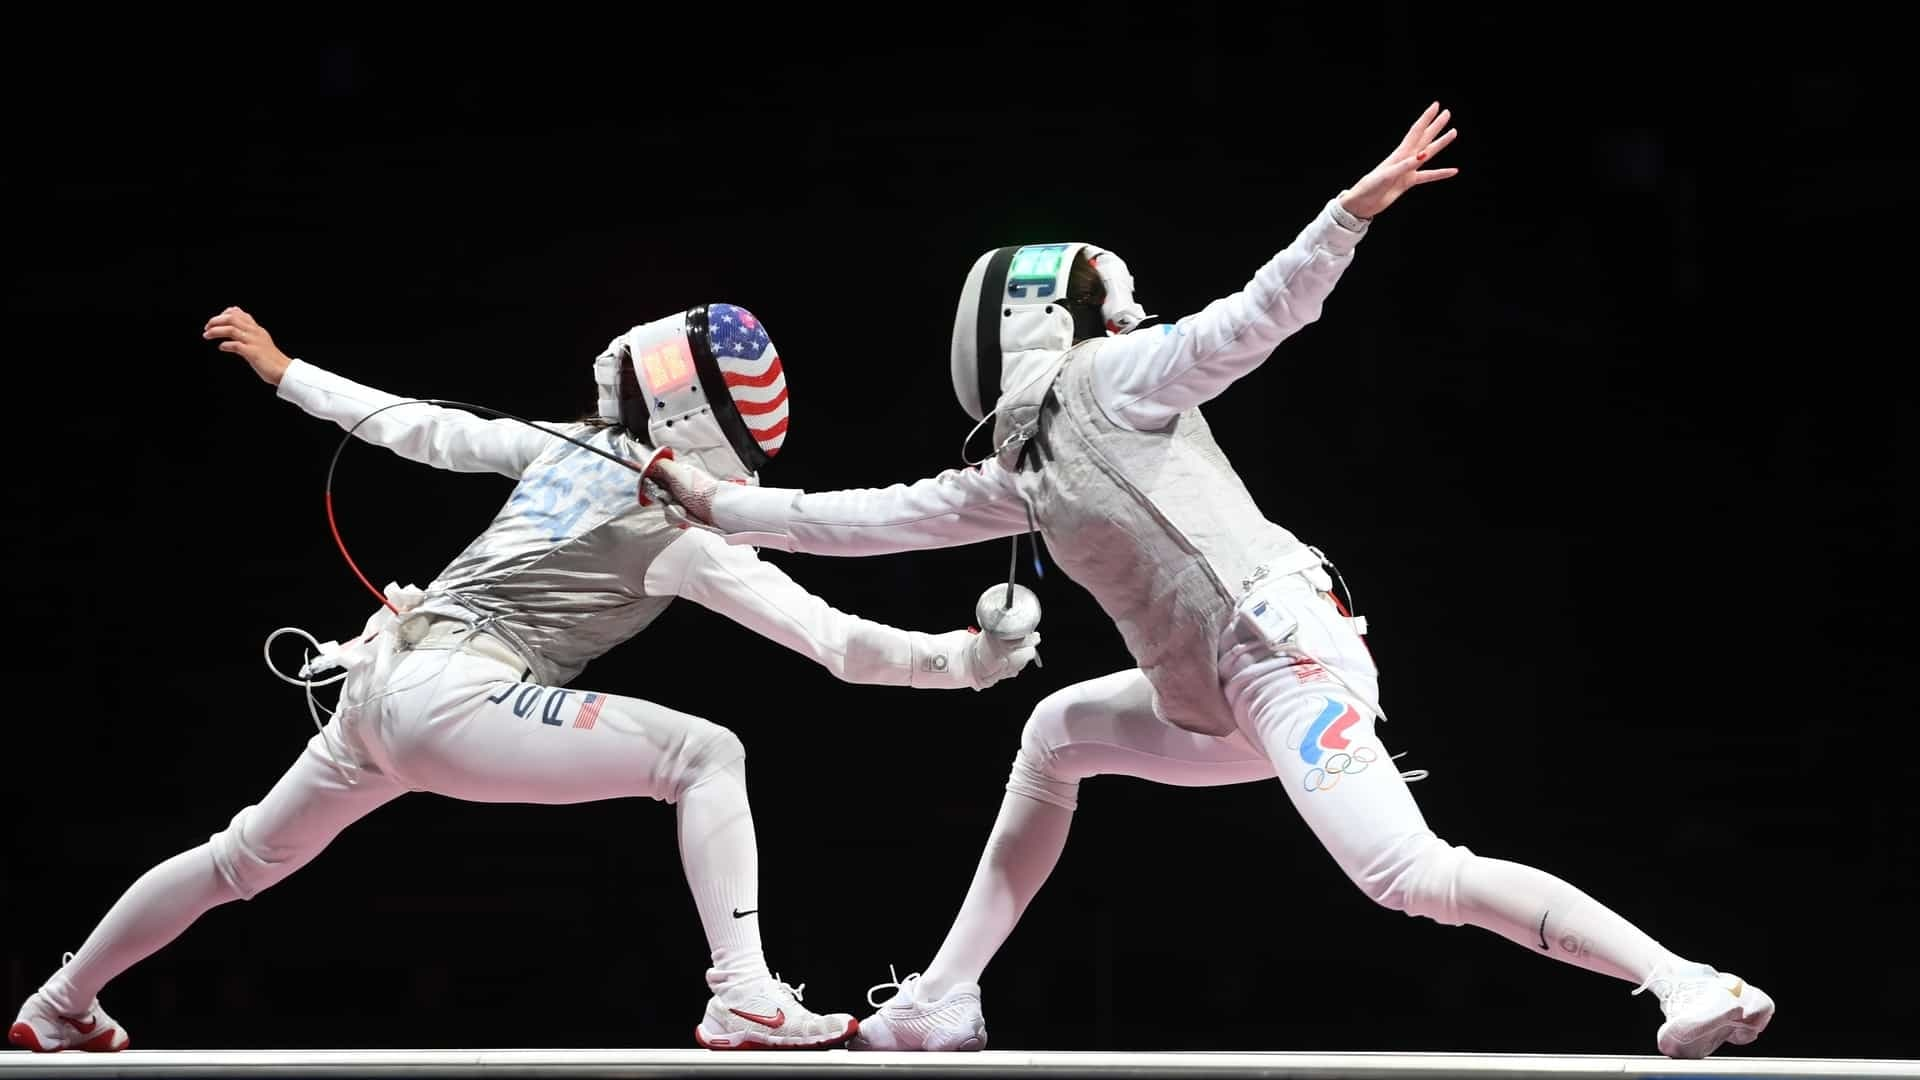 U.S. fencer Lee Kiefer faces Inna Deriglazonva of ROC in the women's foil individual gold medal match at the Tokyo Olympic Games.